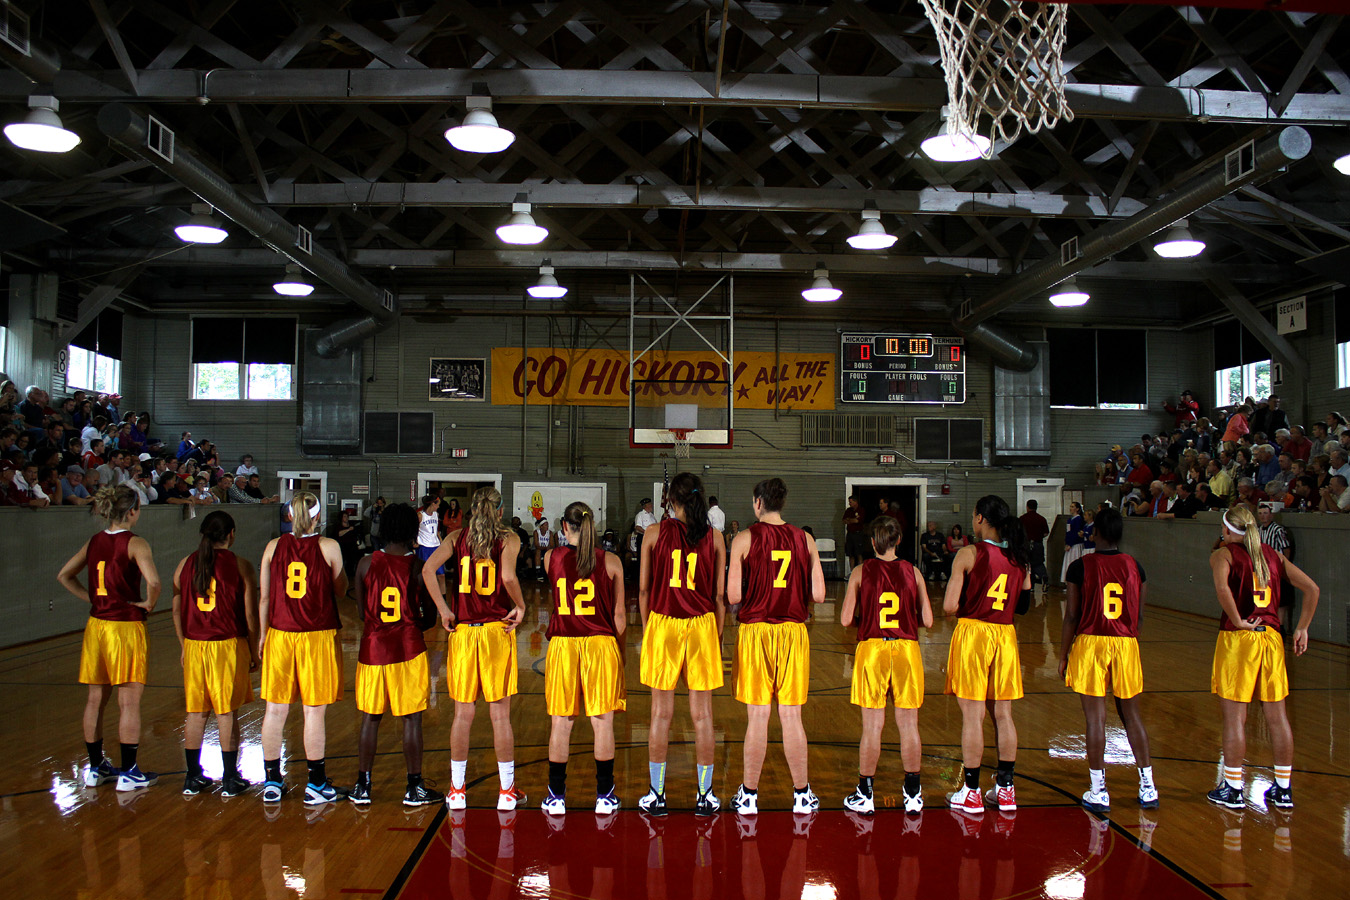 """The Lady Hickory Huskers line up for introductions prior to the 2012 game. Some have described their visits to the Hoosier Gym as """"stepping into a time machine."""" Indeed, this photographer has witnessed grown men cry upon entering what, to them, must be a very special place."""